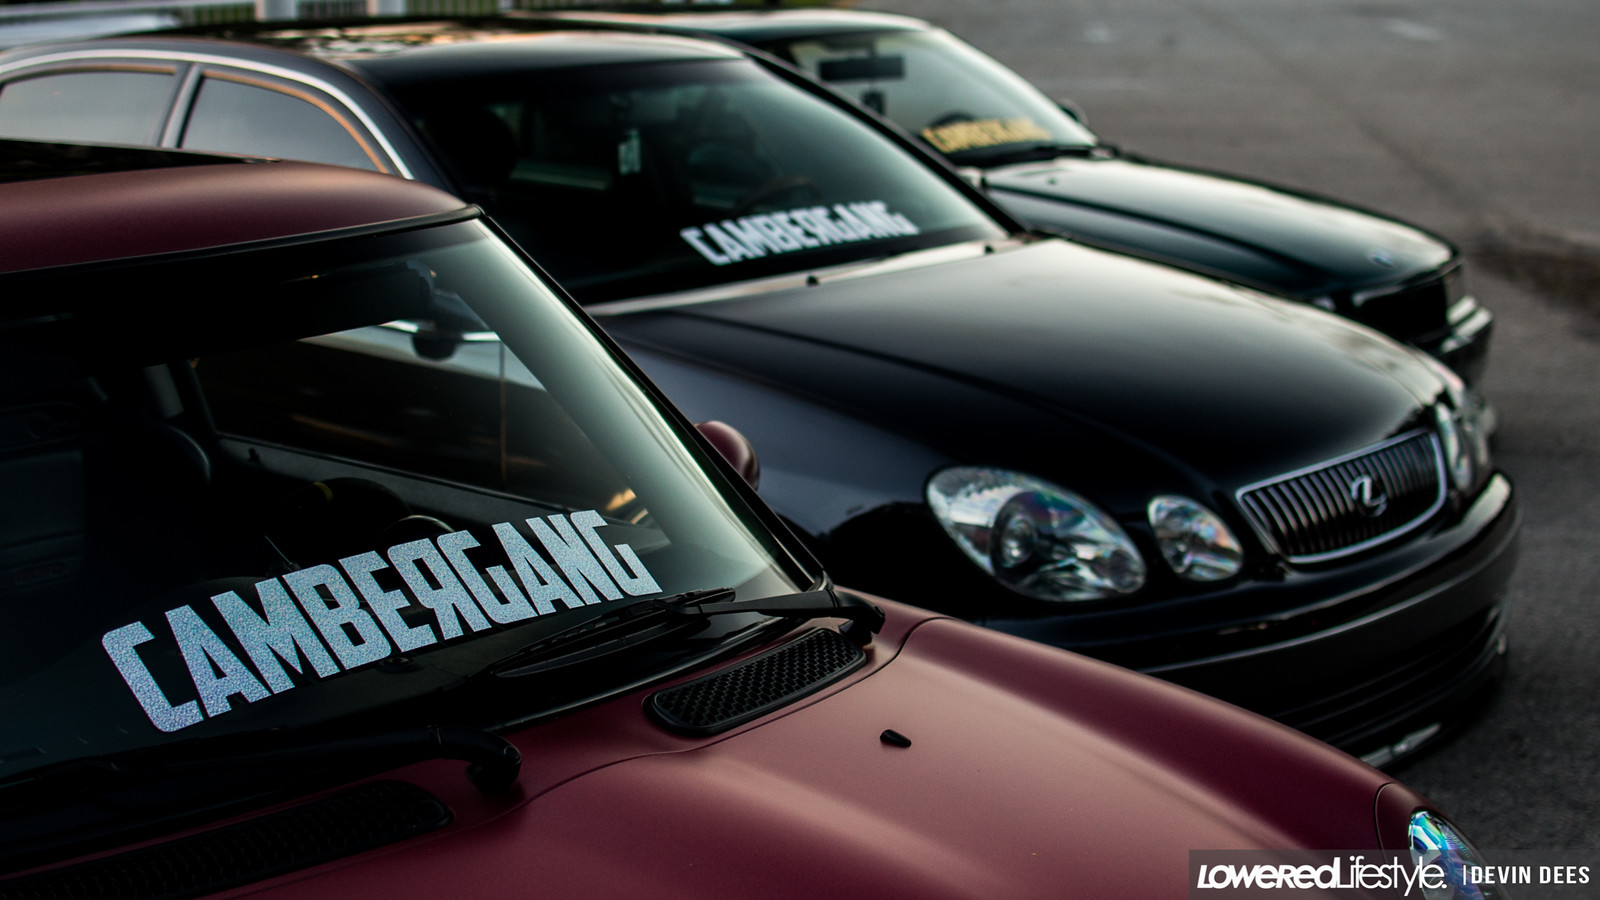 The Tampa Trio - Automotive Features, Event Coverage, Stance, Builds